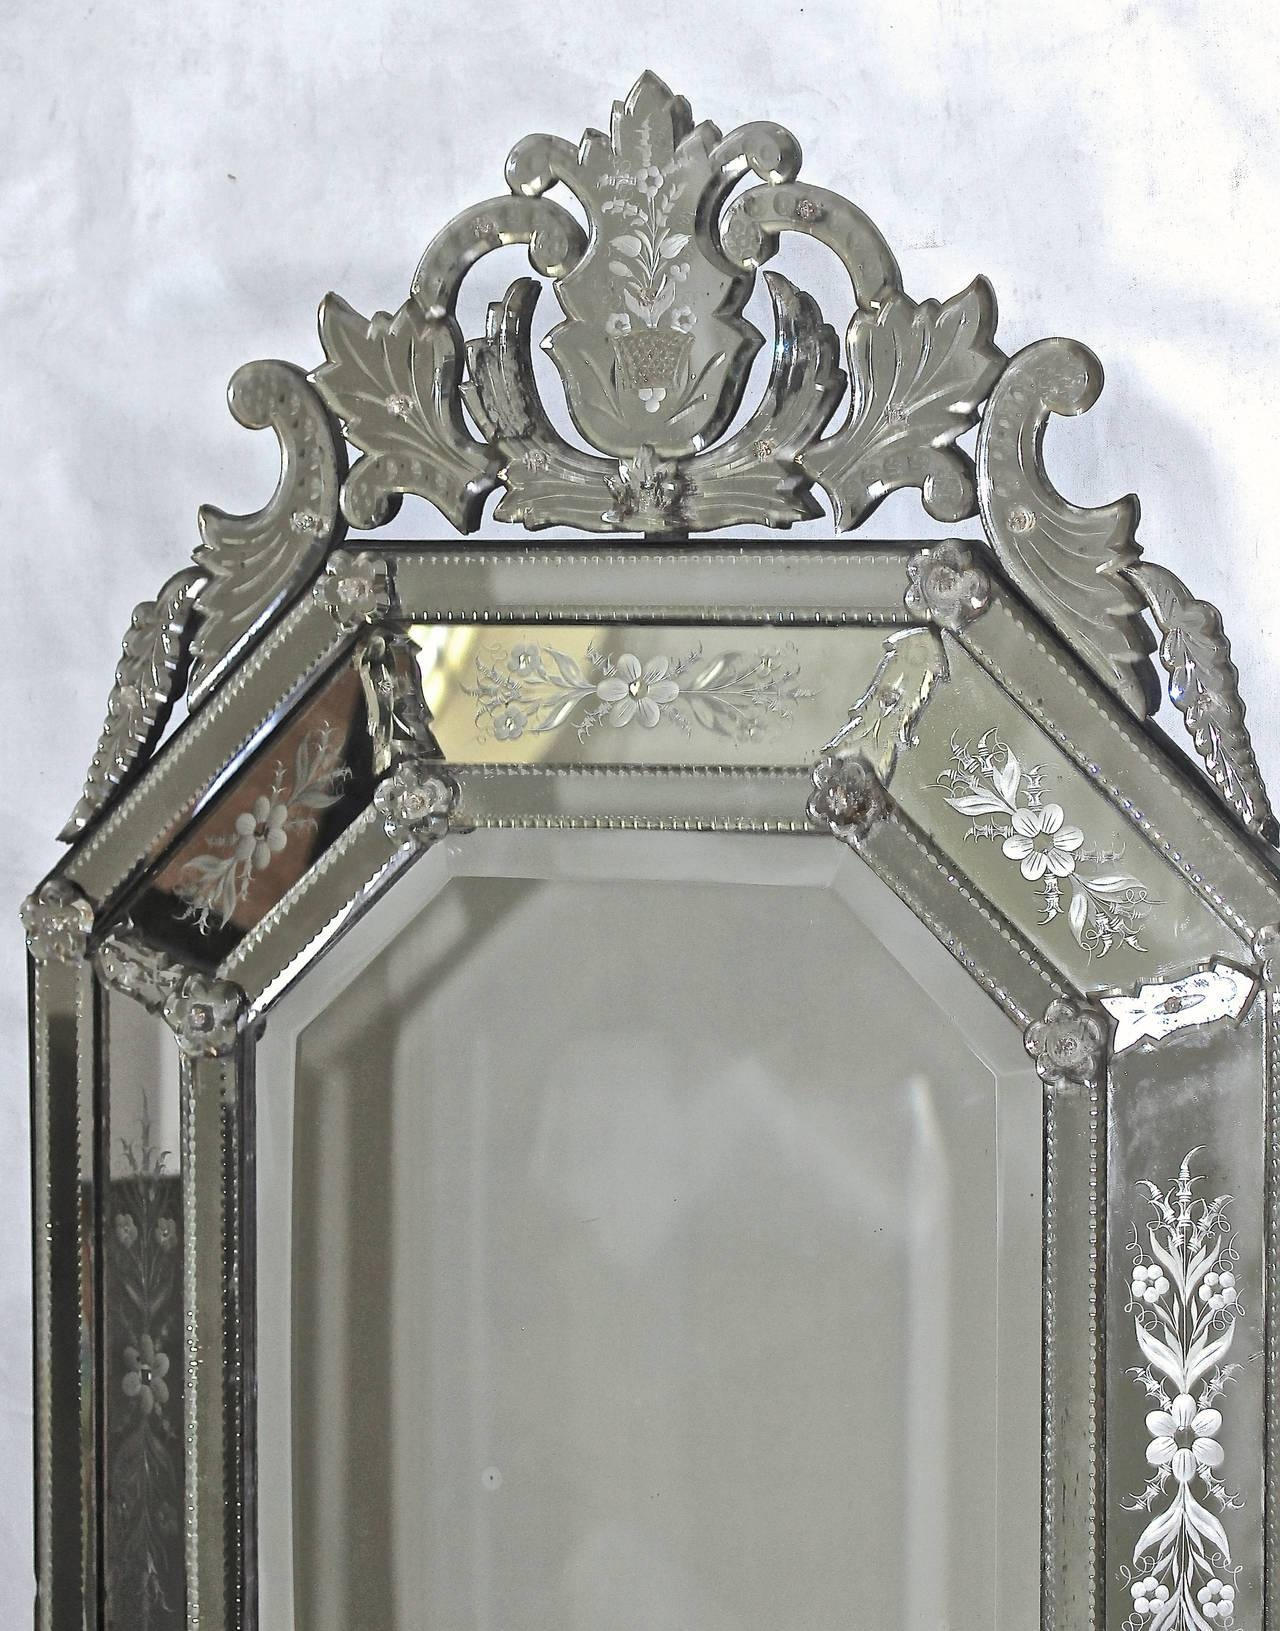 Italian Venetian Etched Glass Wall Mirror For Sale At 1Stdibs with Venetian Etched Glass Mirrors (Image 13 of 15)